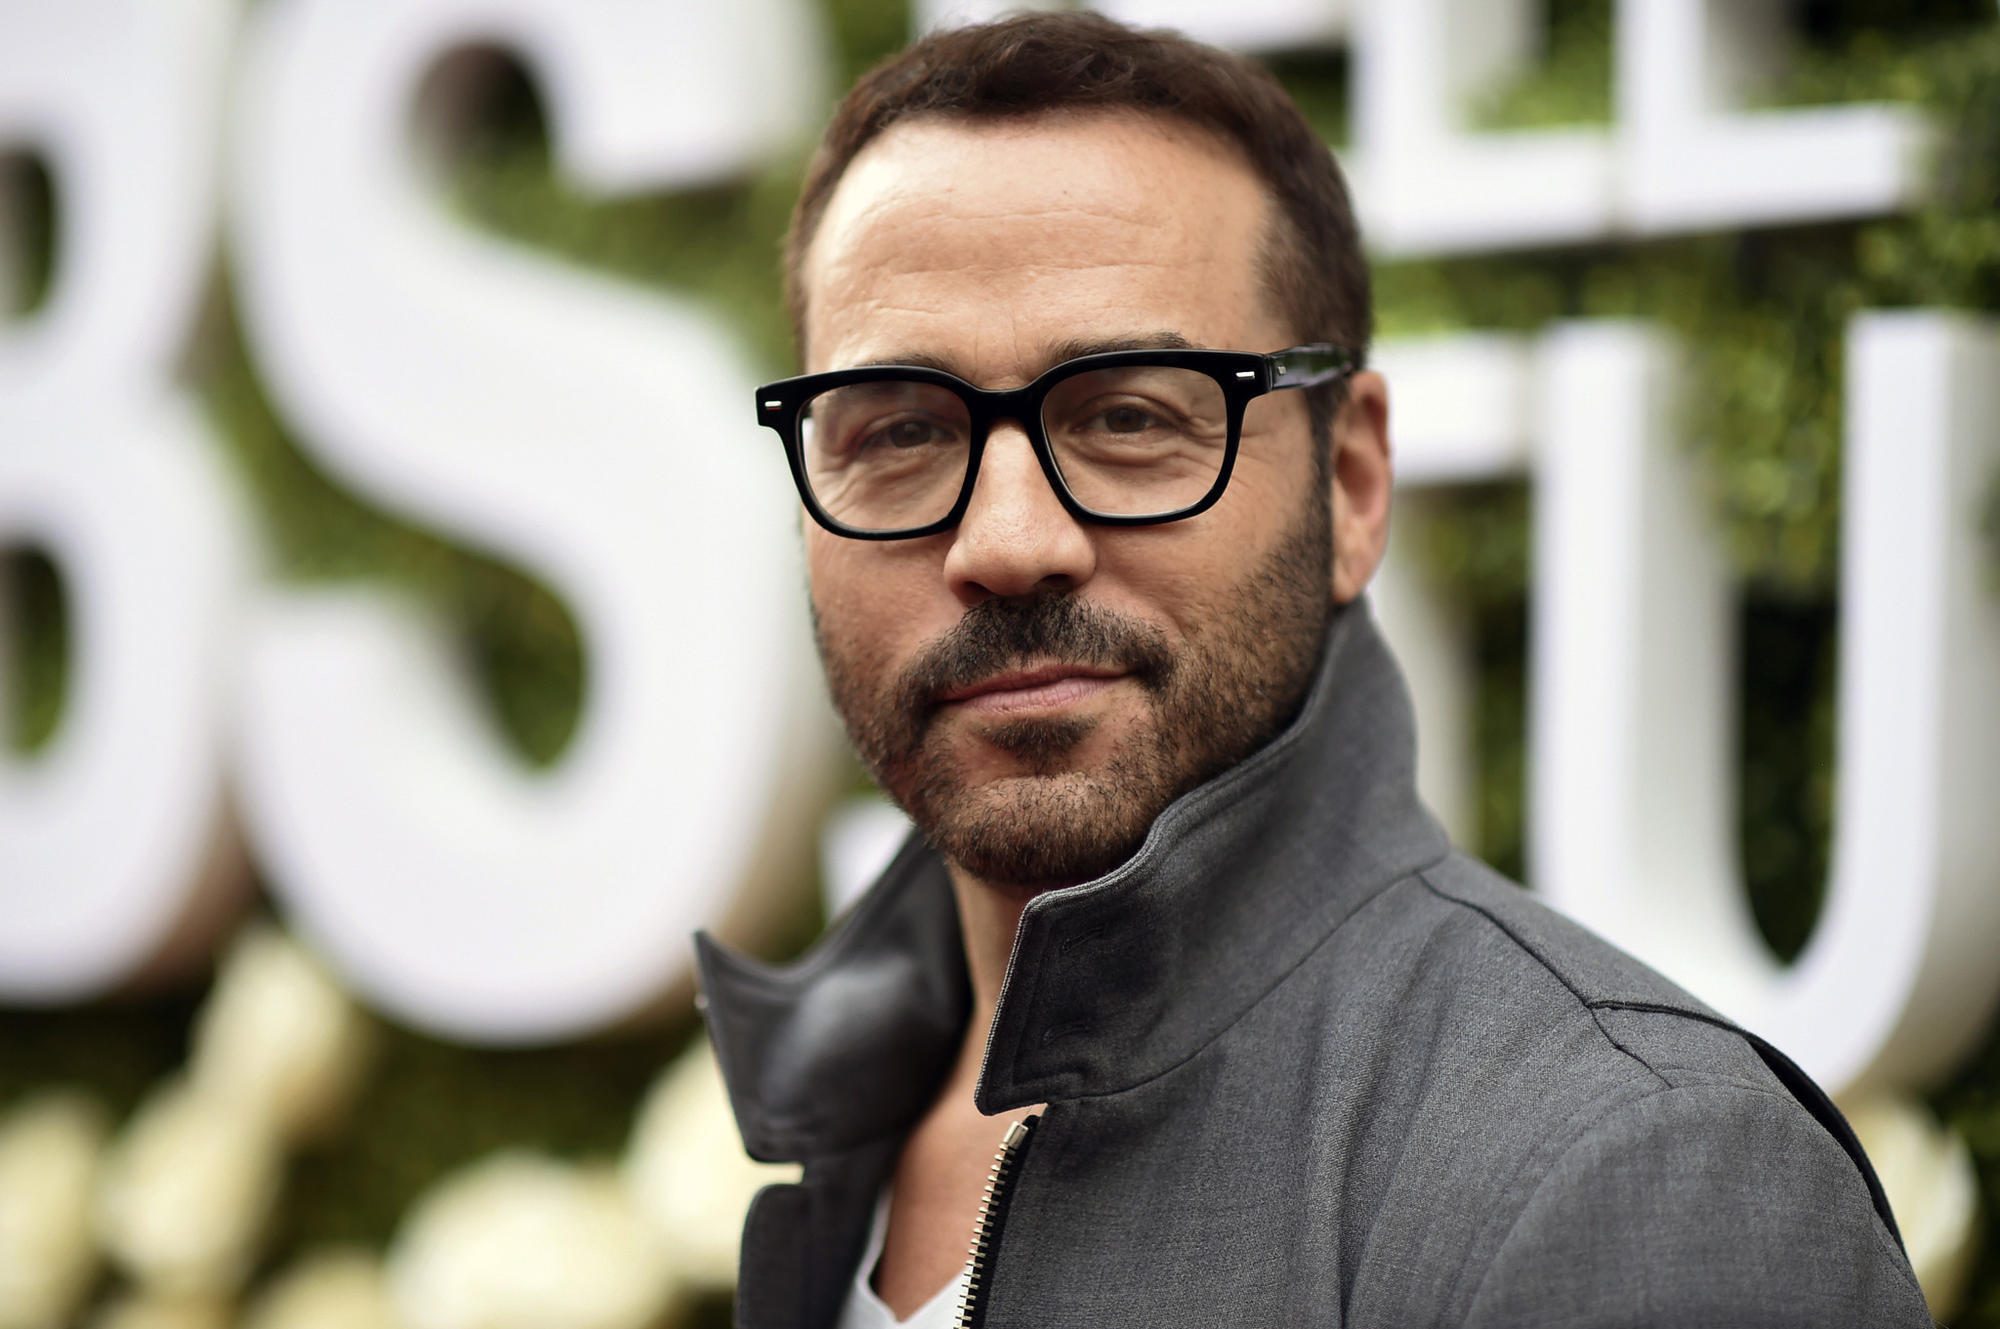 Cbs Looking Into Groping Allegations Against Jeremy Piven Chicago Tribune